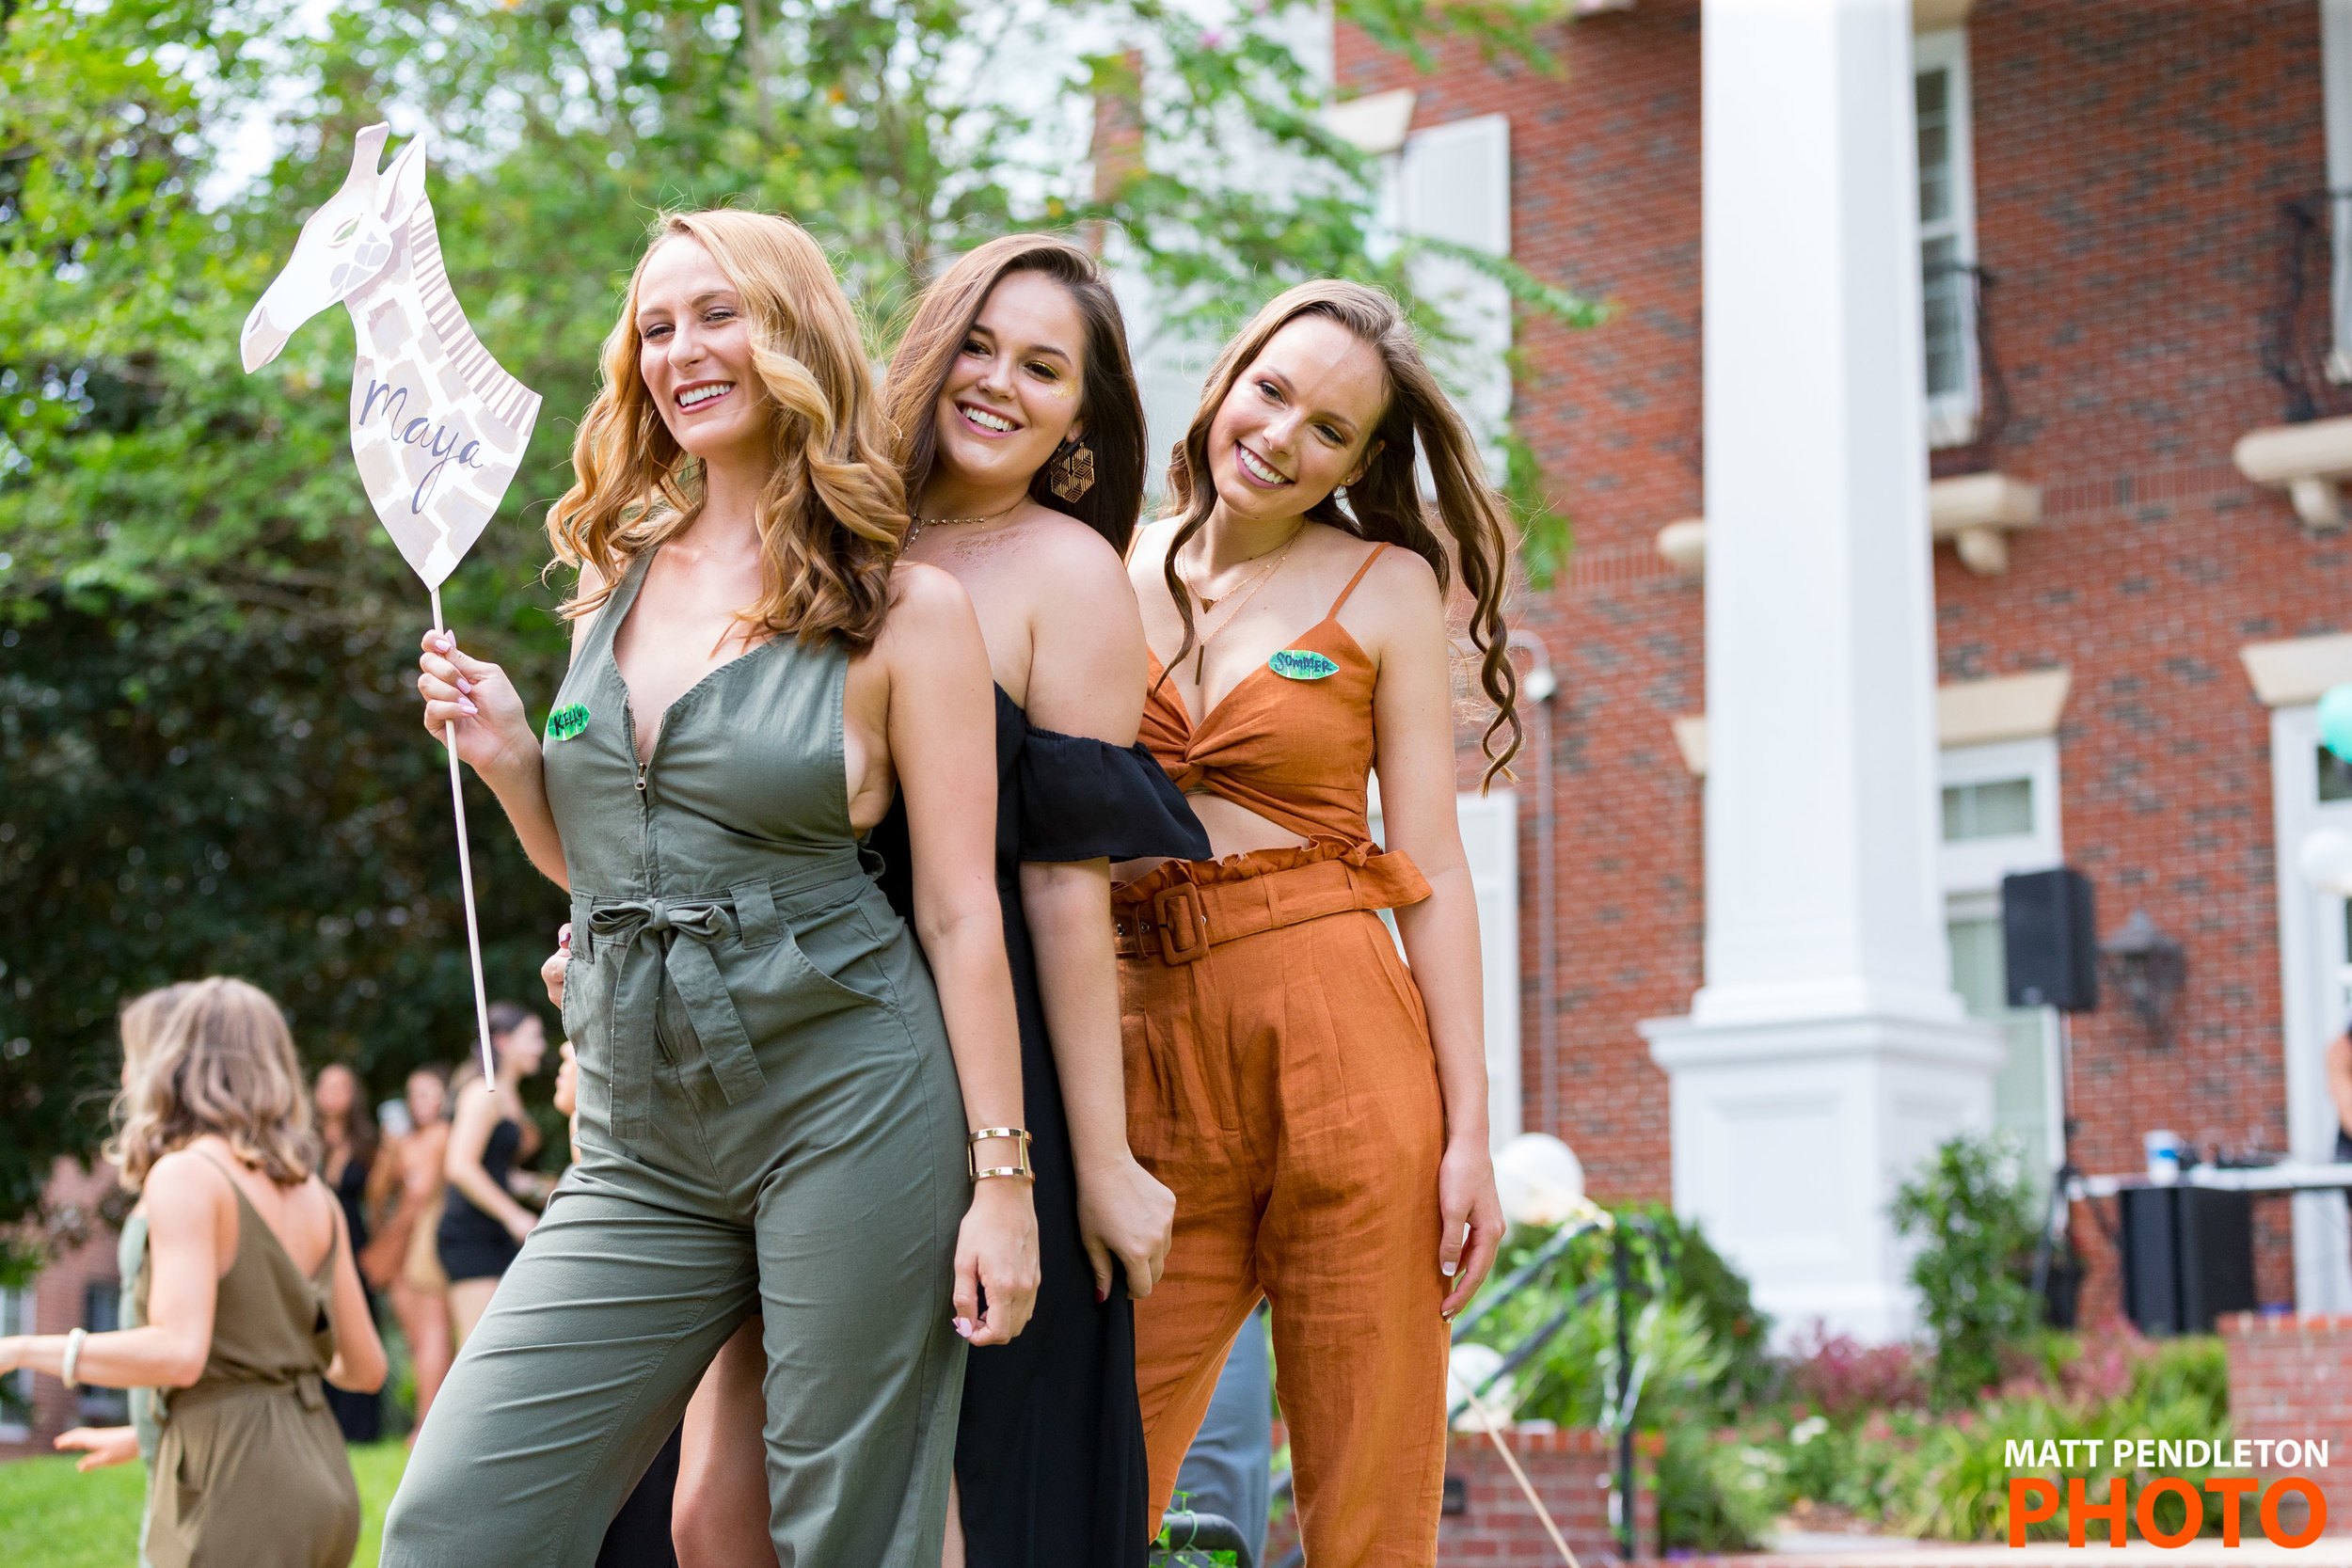 Images from the UF Bid Day 2018 on Sunday, August 26, 2018 at UF Sorority Row in Gainesville, FL. Photo by Matt Pendleton/Matt Pendleton Photography for UF Student Affairs Communications